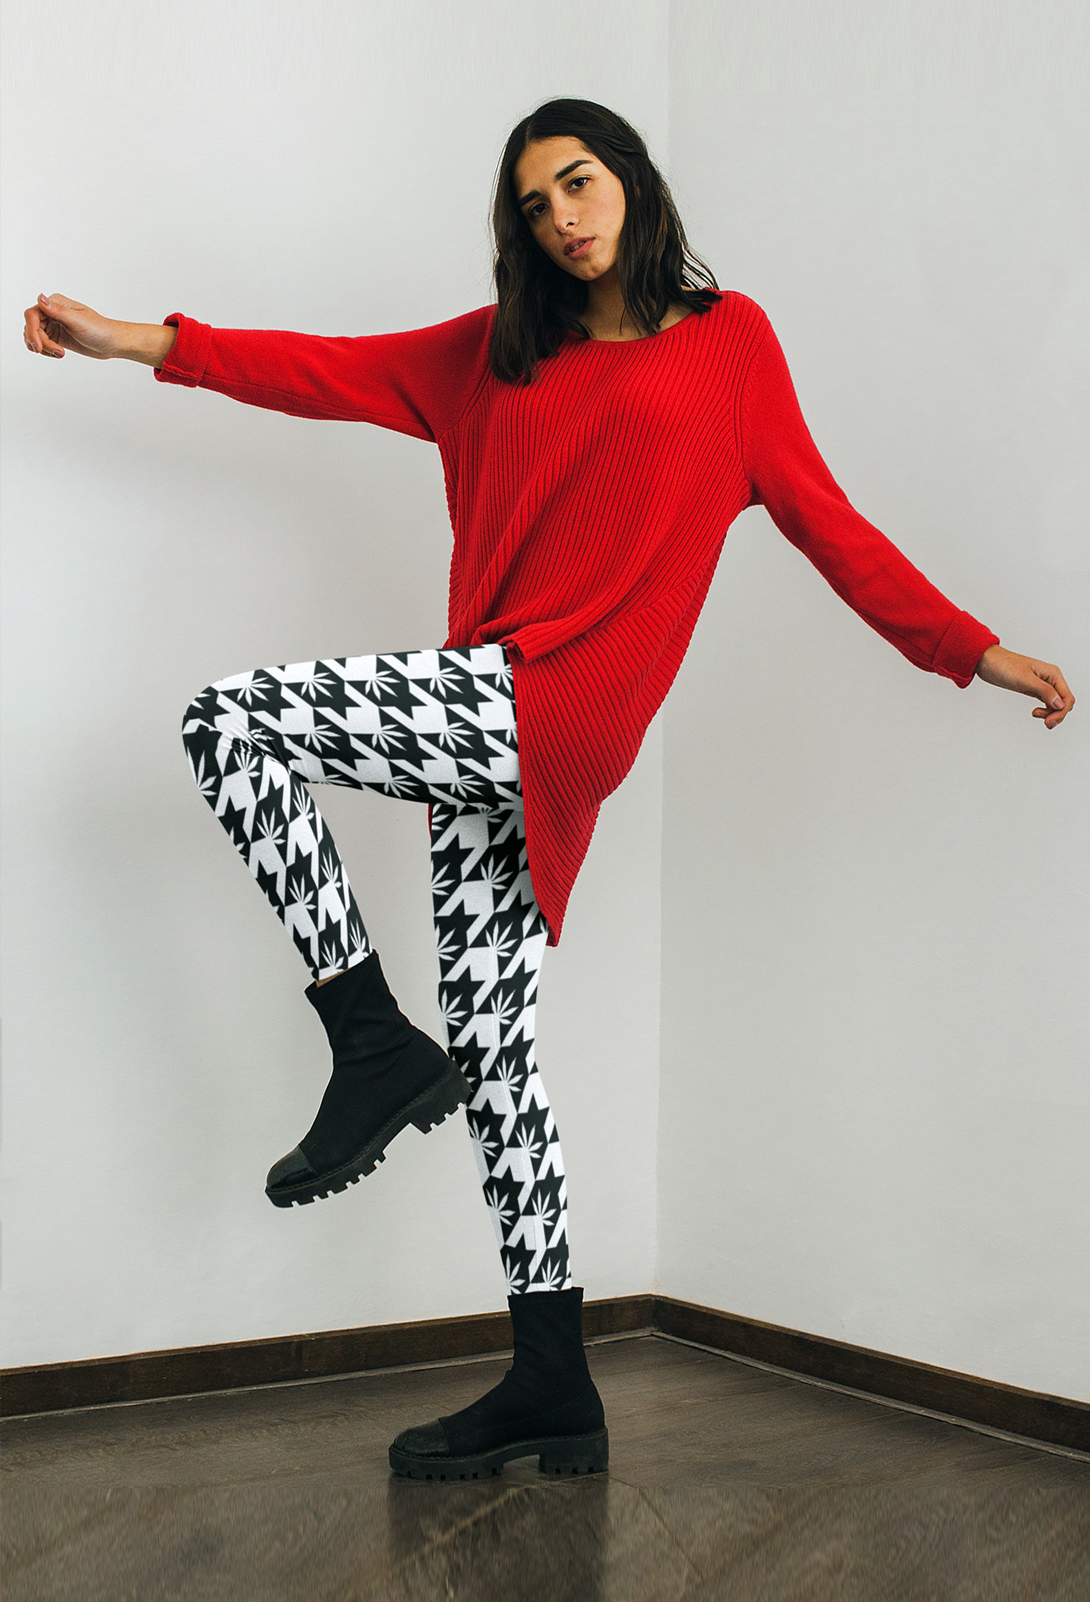 JUST GET HIGH_HIGHEST BITCH_OVERSIZED HOUNDS TOOTH LEGGINGS_model